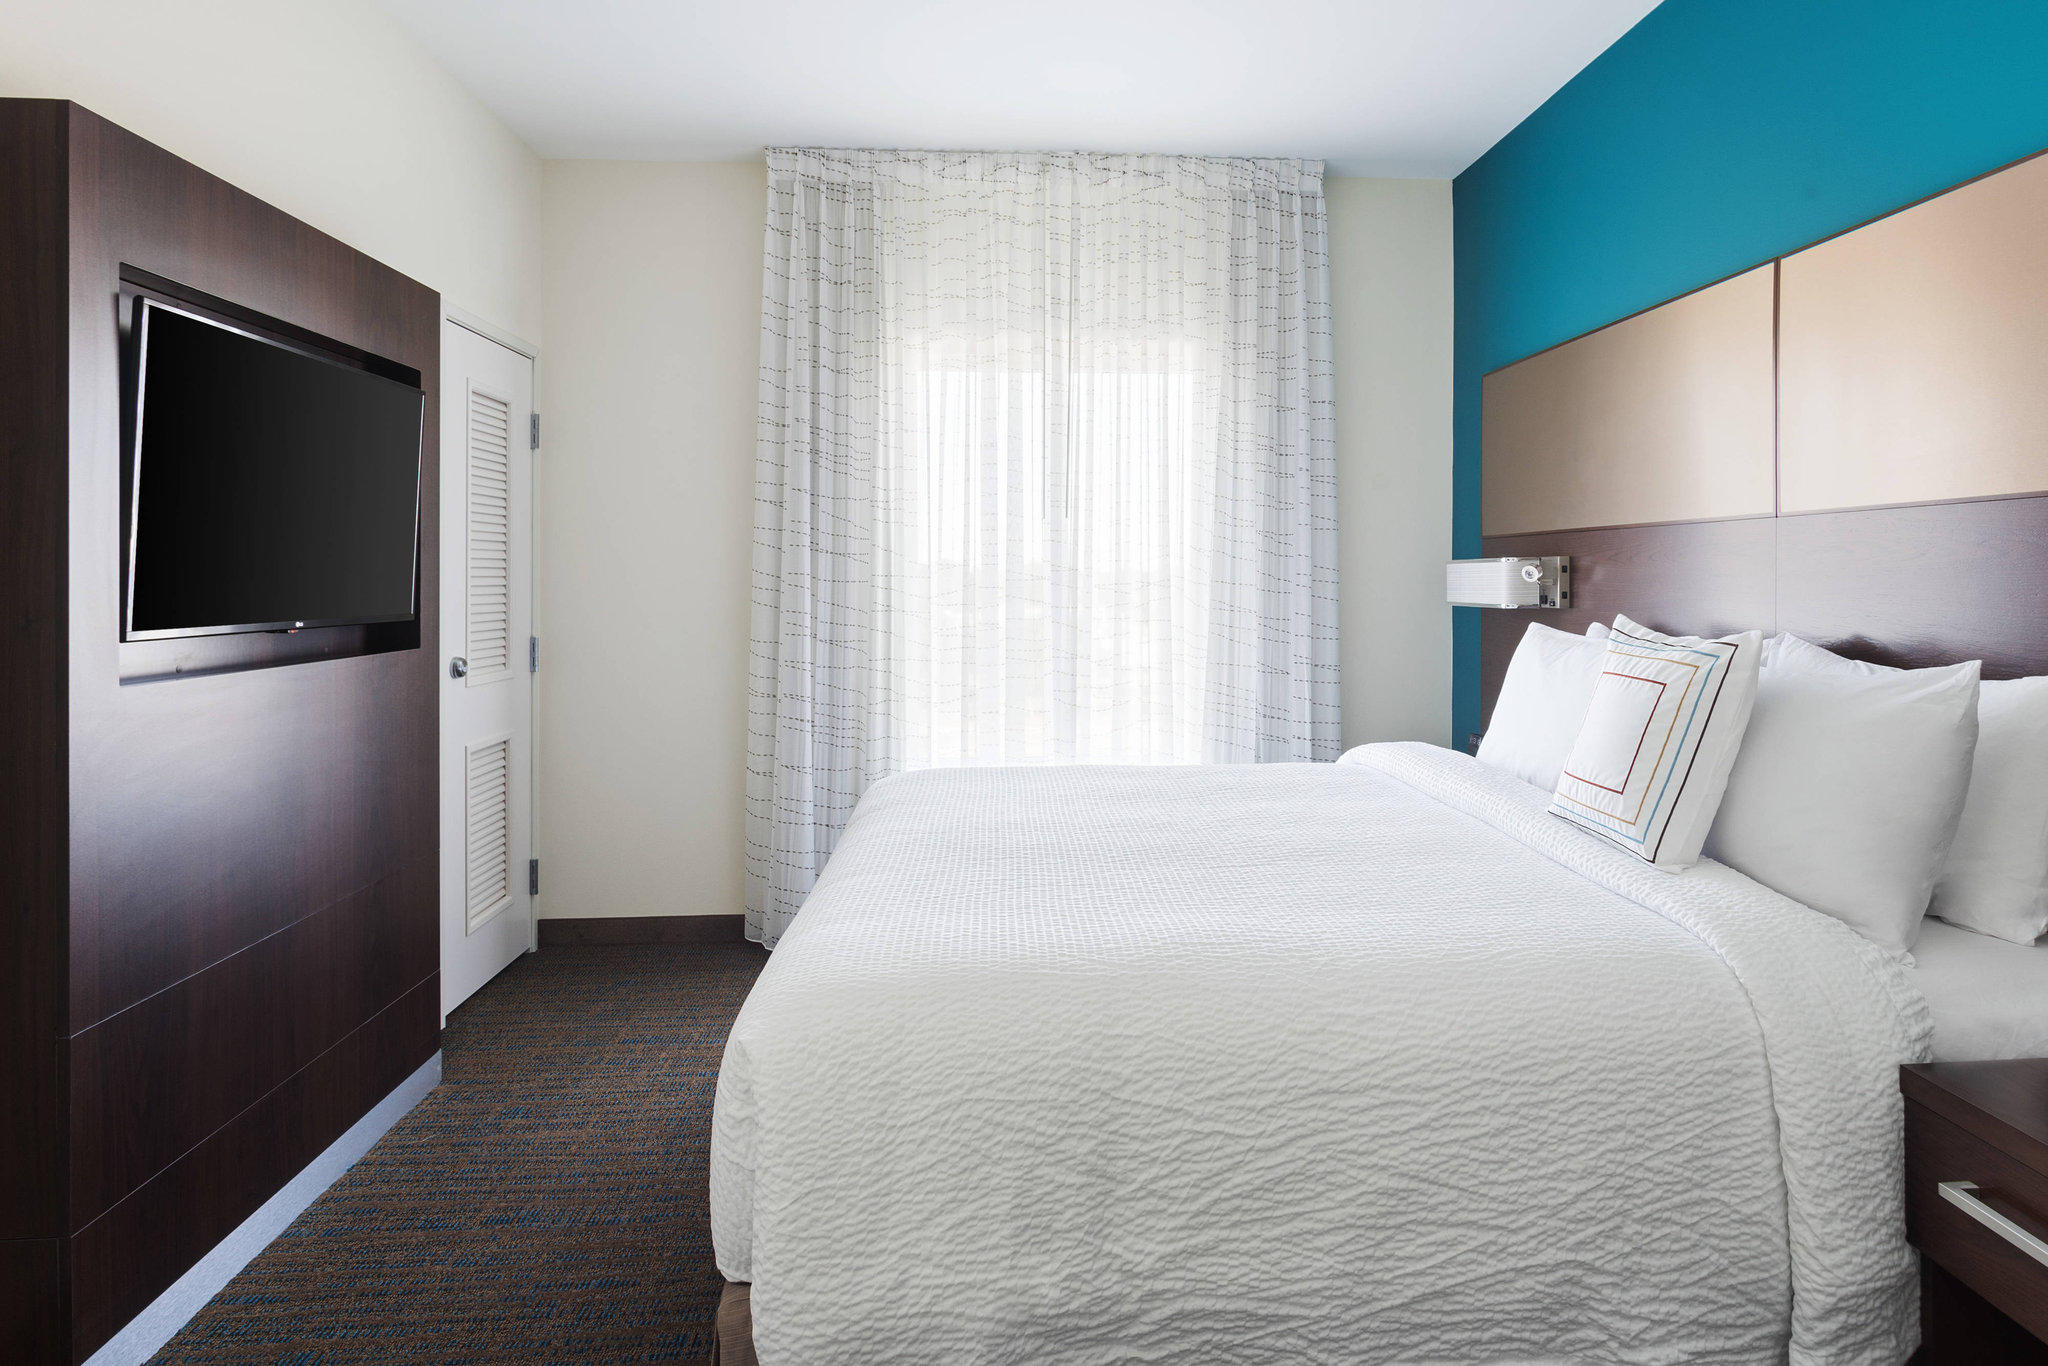 Residence Inn by Marriott Houston West/Beltway 8 at Clay Road